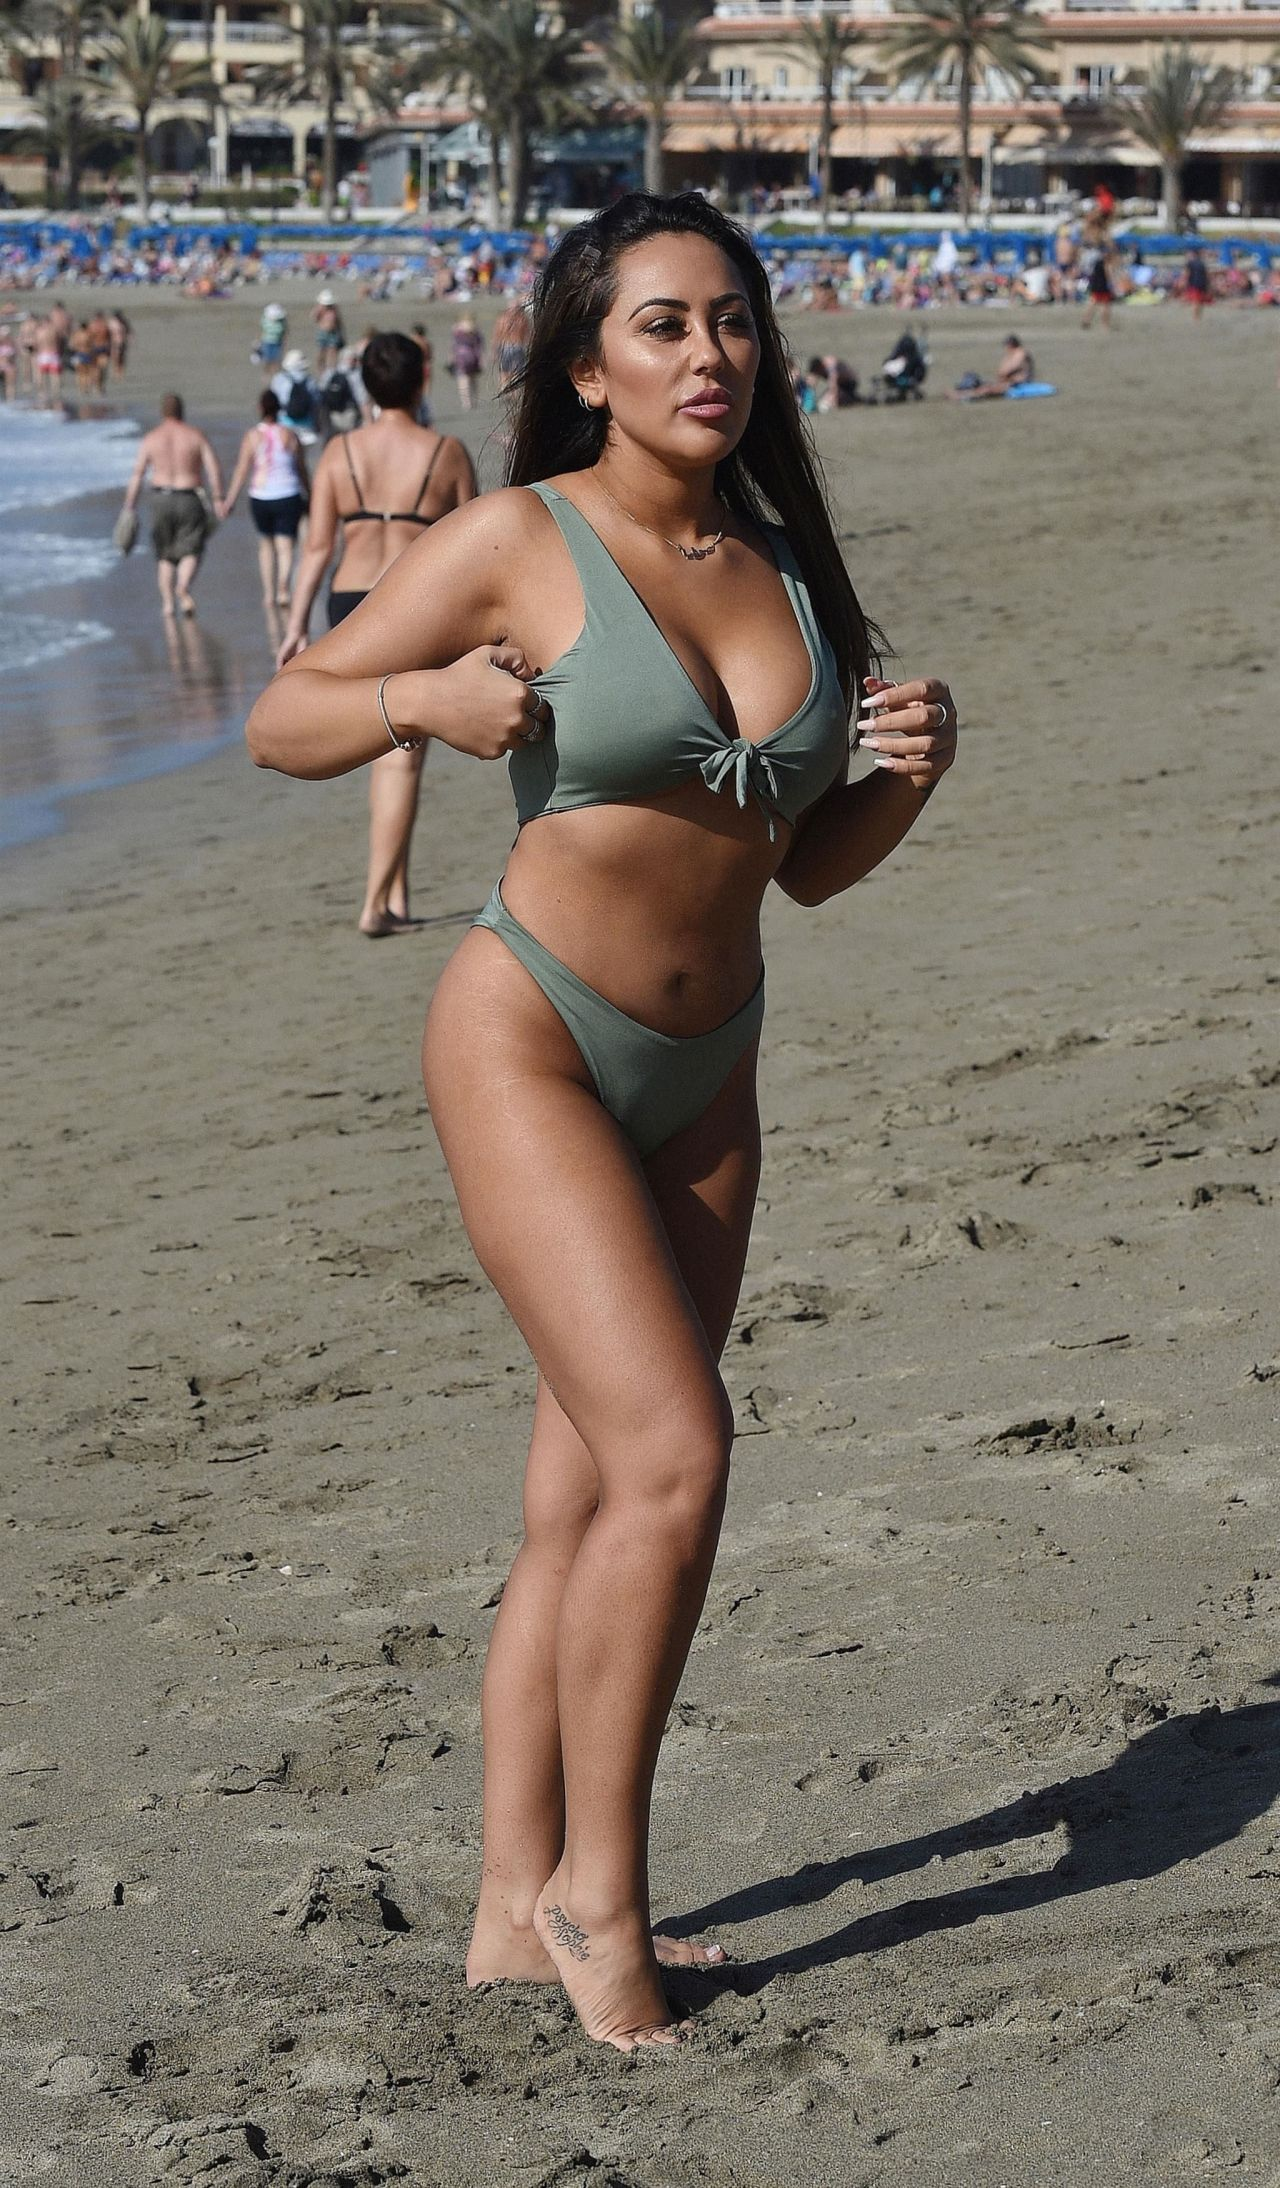 Sophie Kasaei in Black Bikini on holiday in Turkey Pic 2 of 35